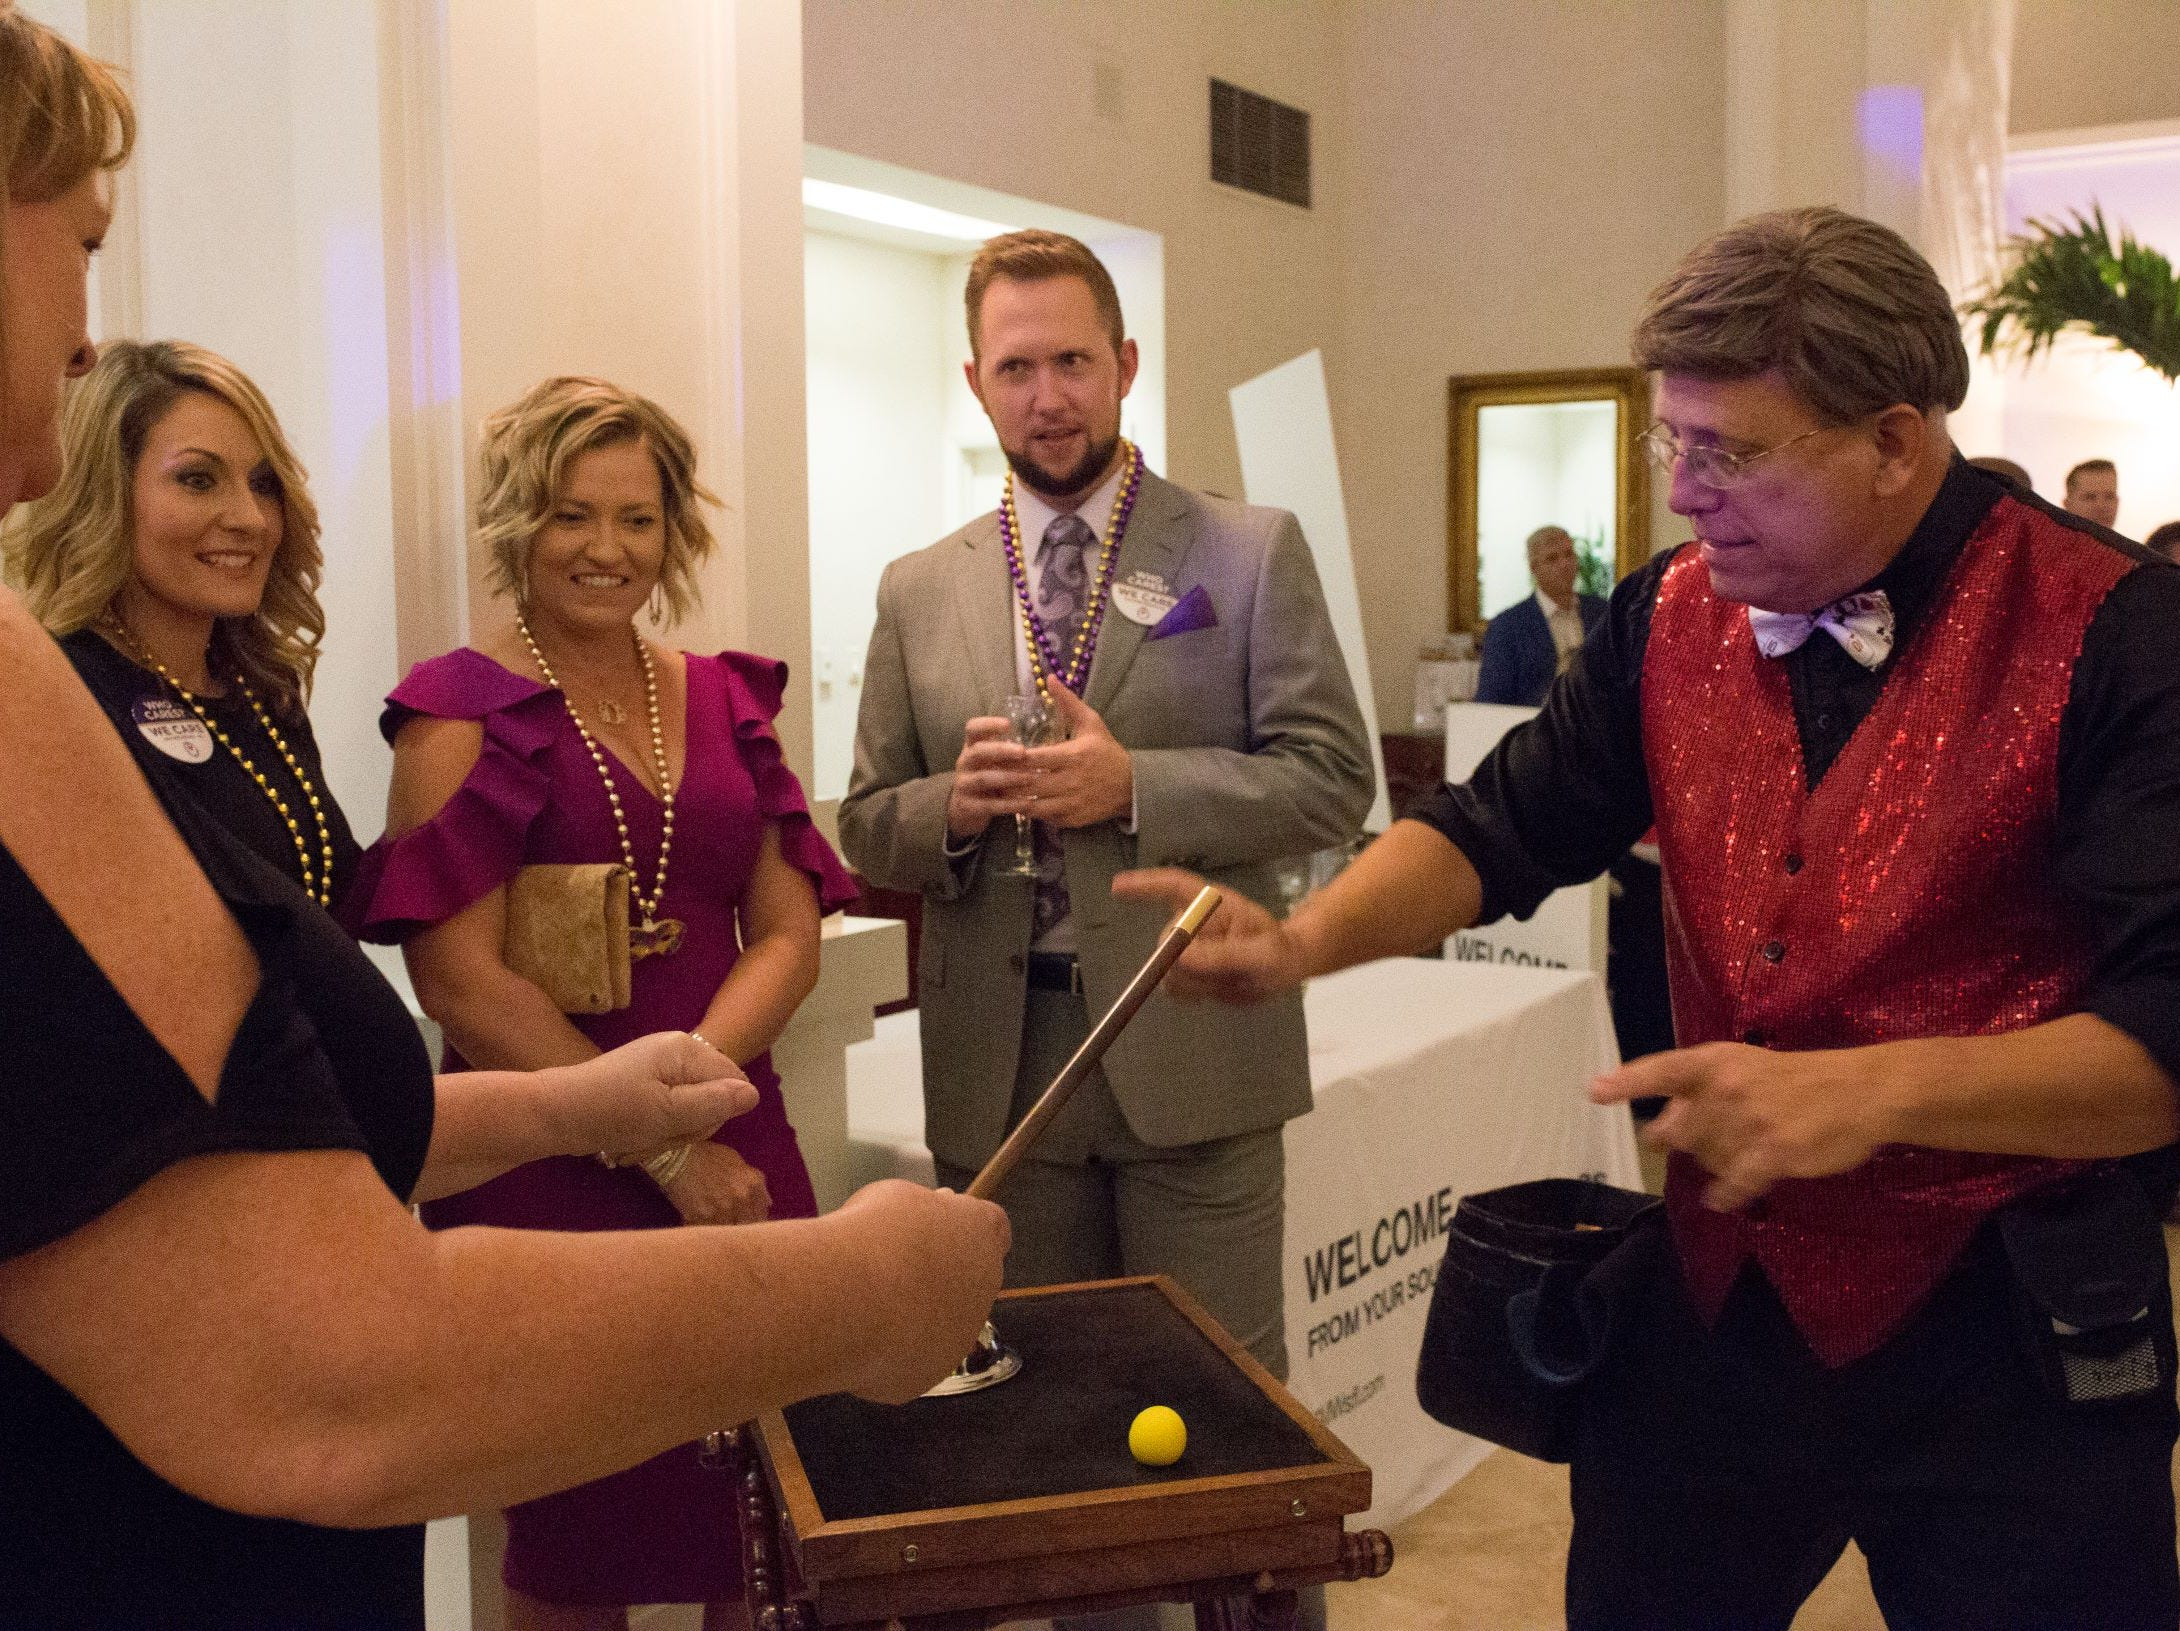 Magician David Kelly, right, entertains Mardi Gras guests Elizabeth White, left, Dyan Kurth and Ben Earman with sleight of hand tricks.